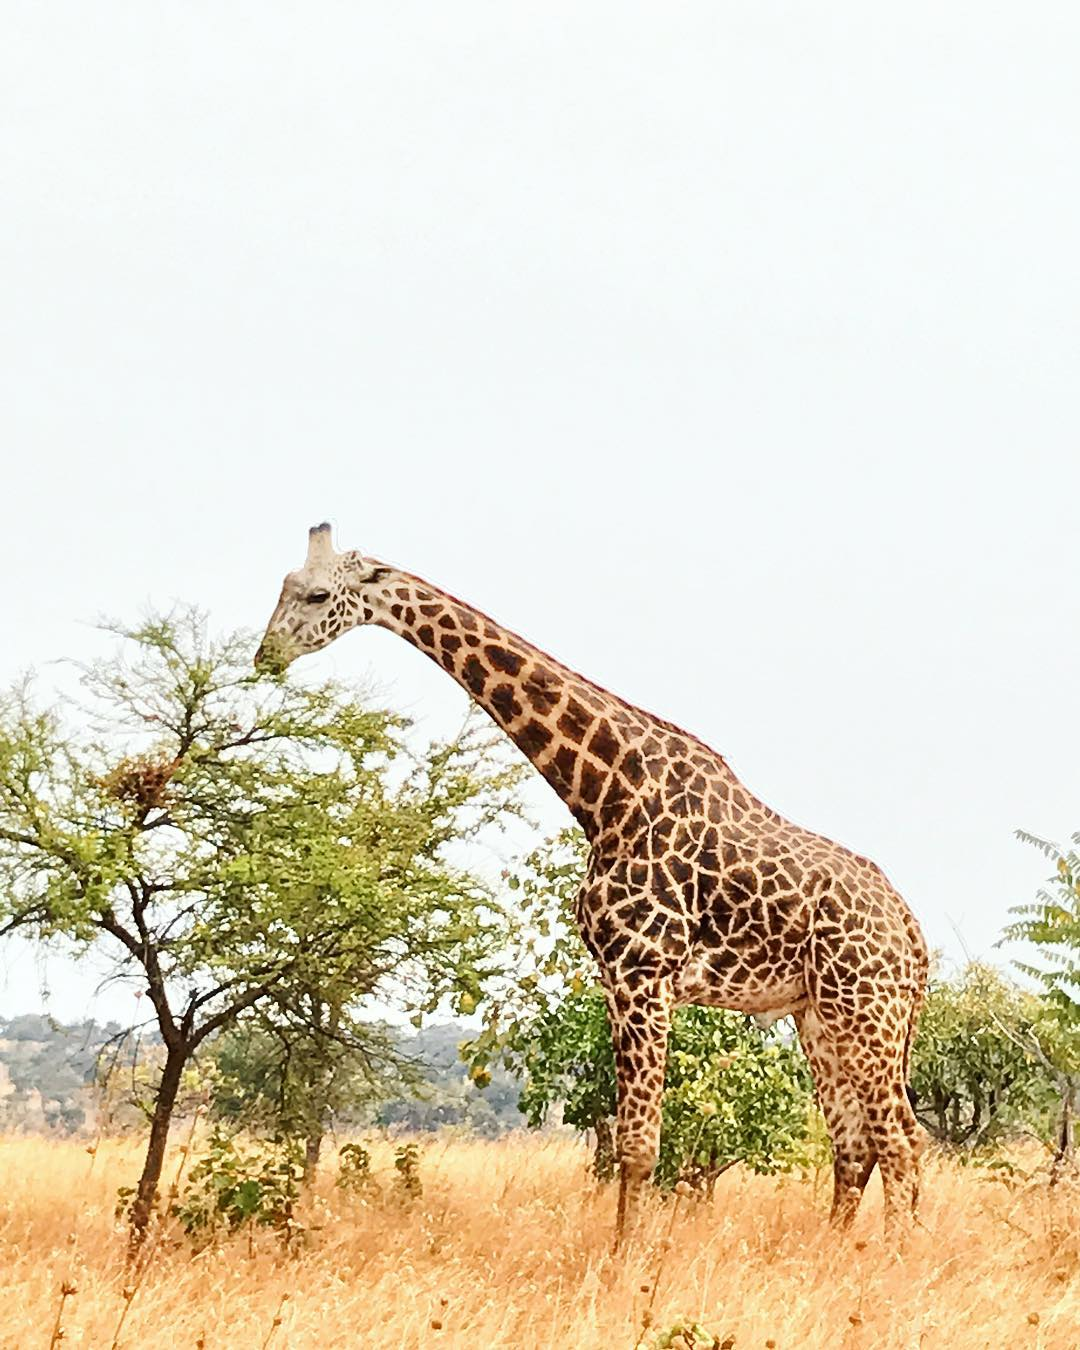 A closer snapshot of the giraffe at Akagera.